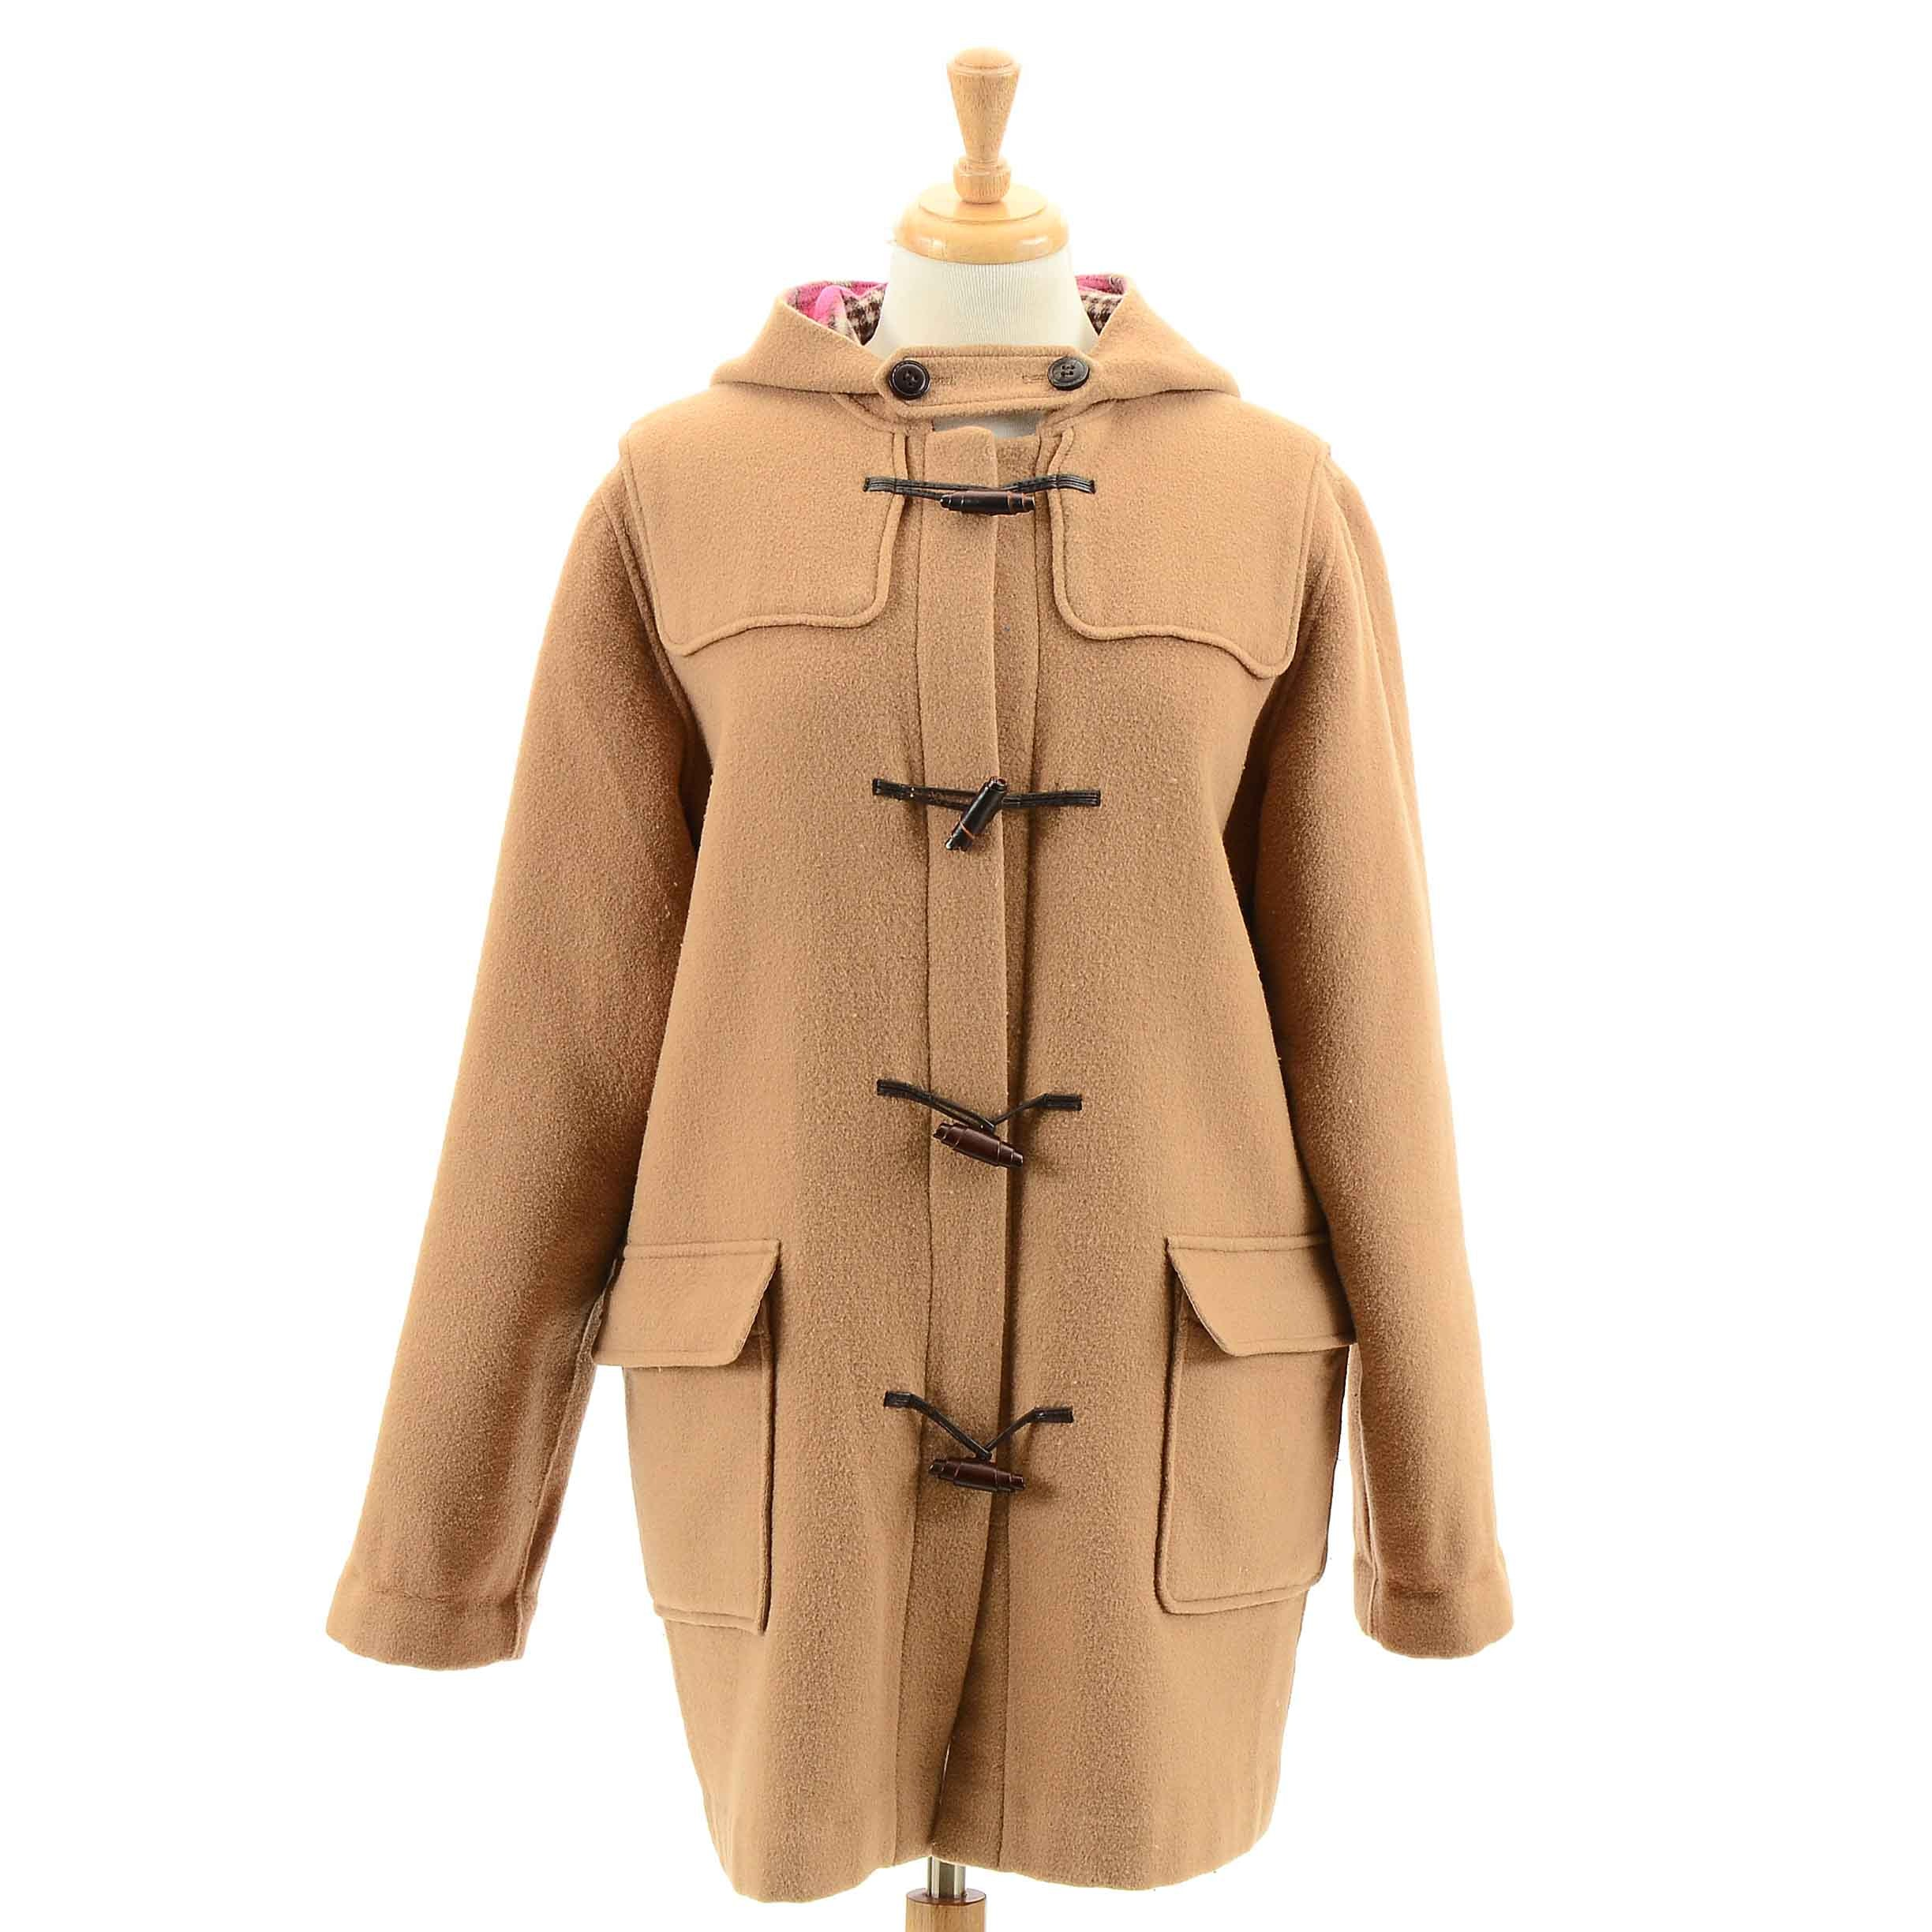 Lilly Pulitzer Tan Wool Blend Duffle Coat